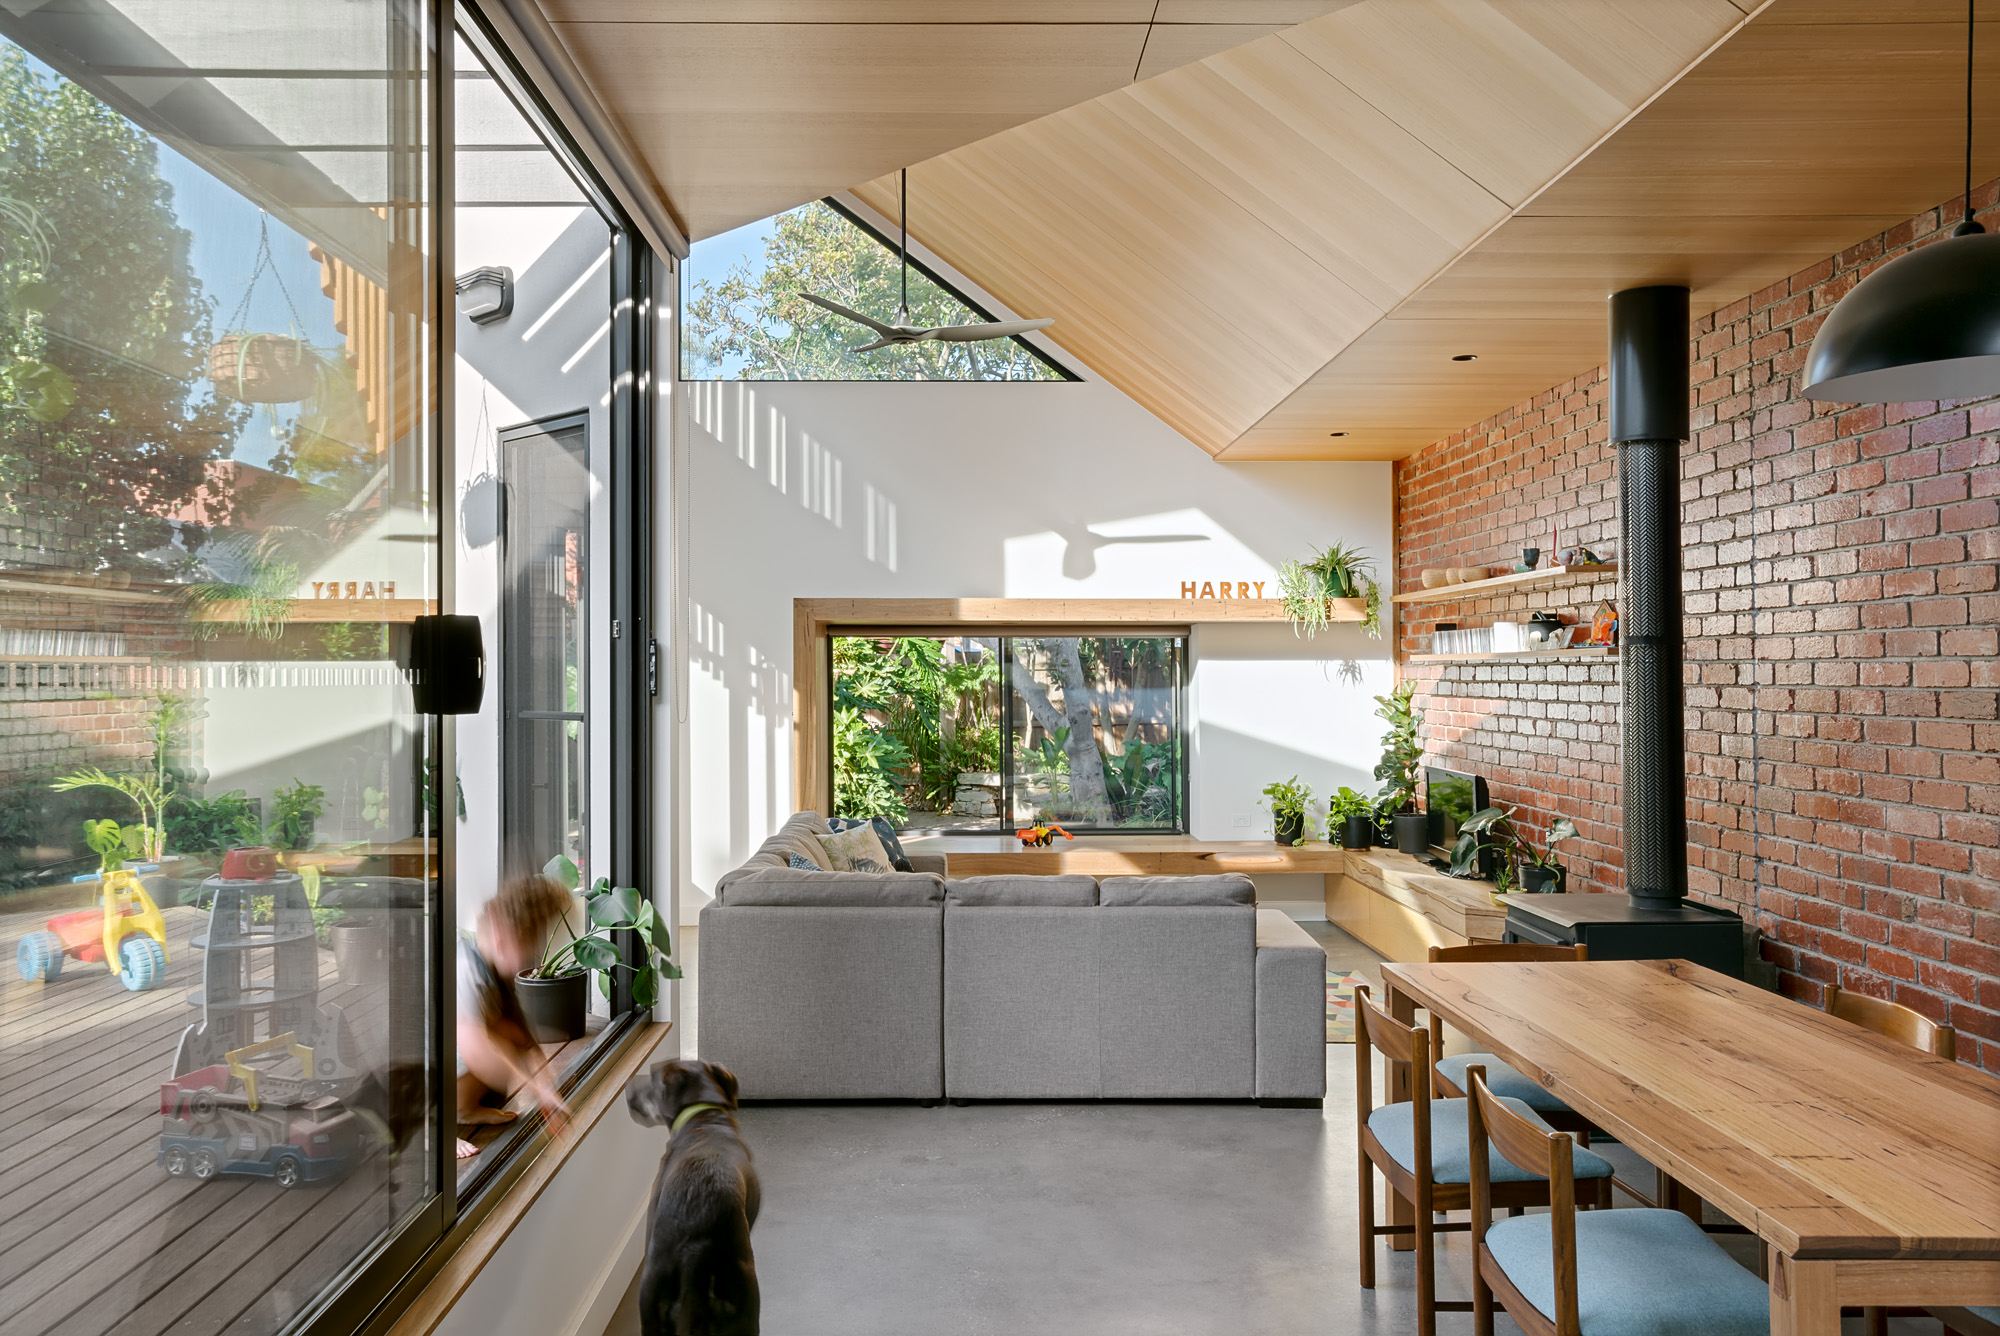 green sheepcollective sustainable architect melbourne environmentally friendly green architecture indoor outdoor living.jpg